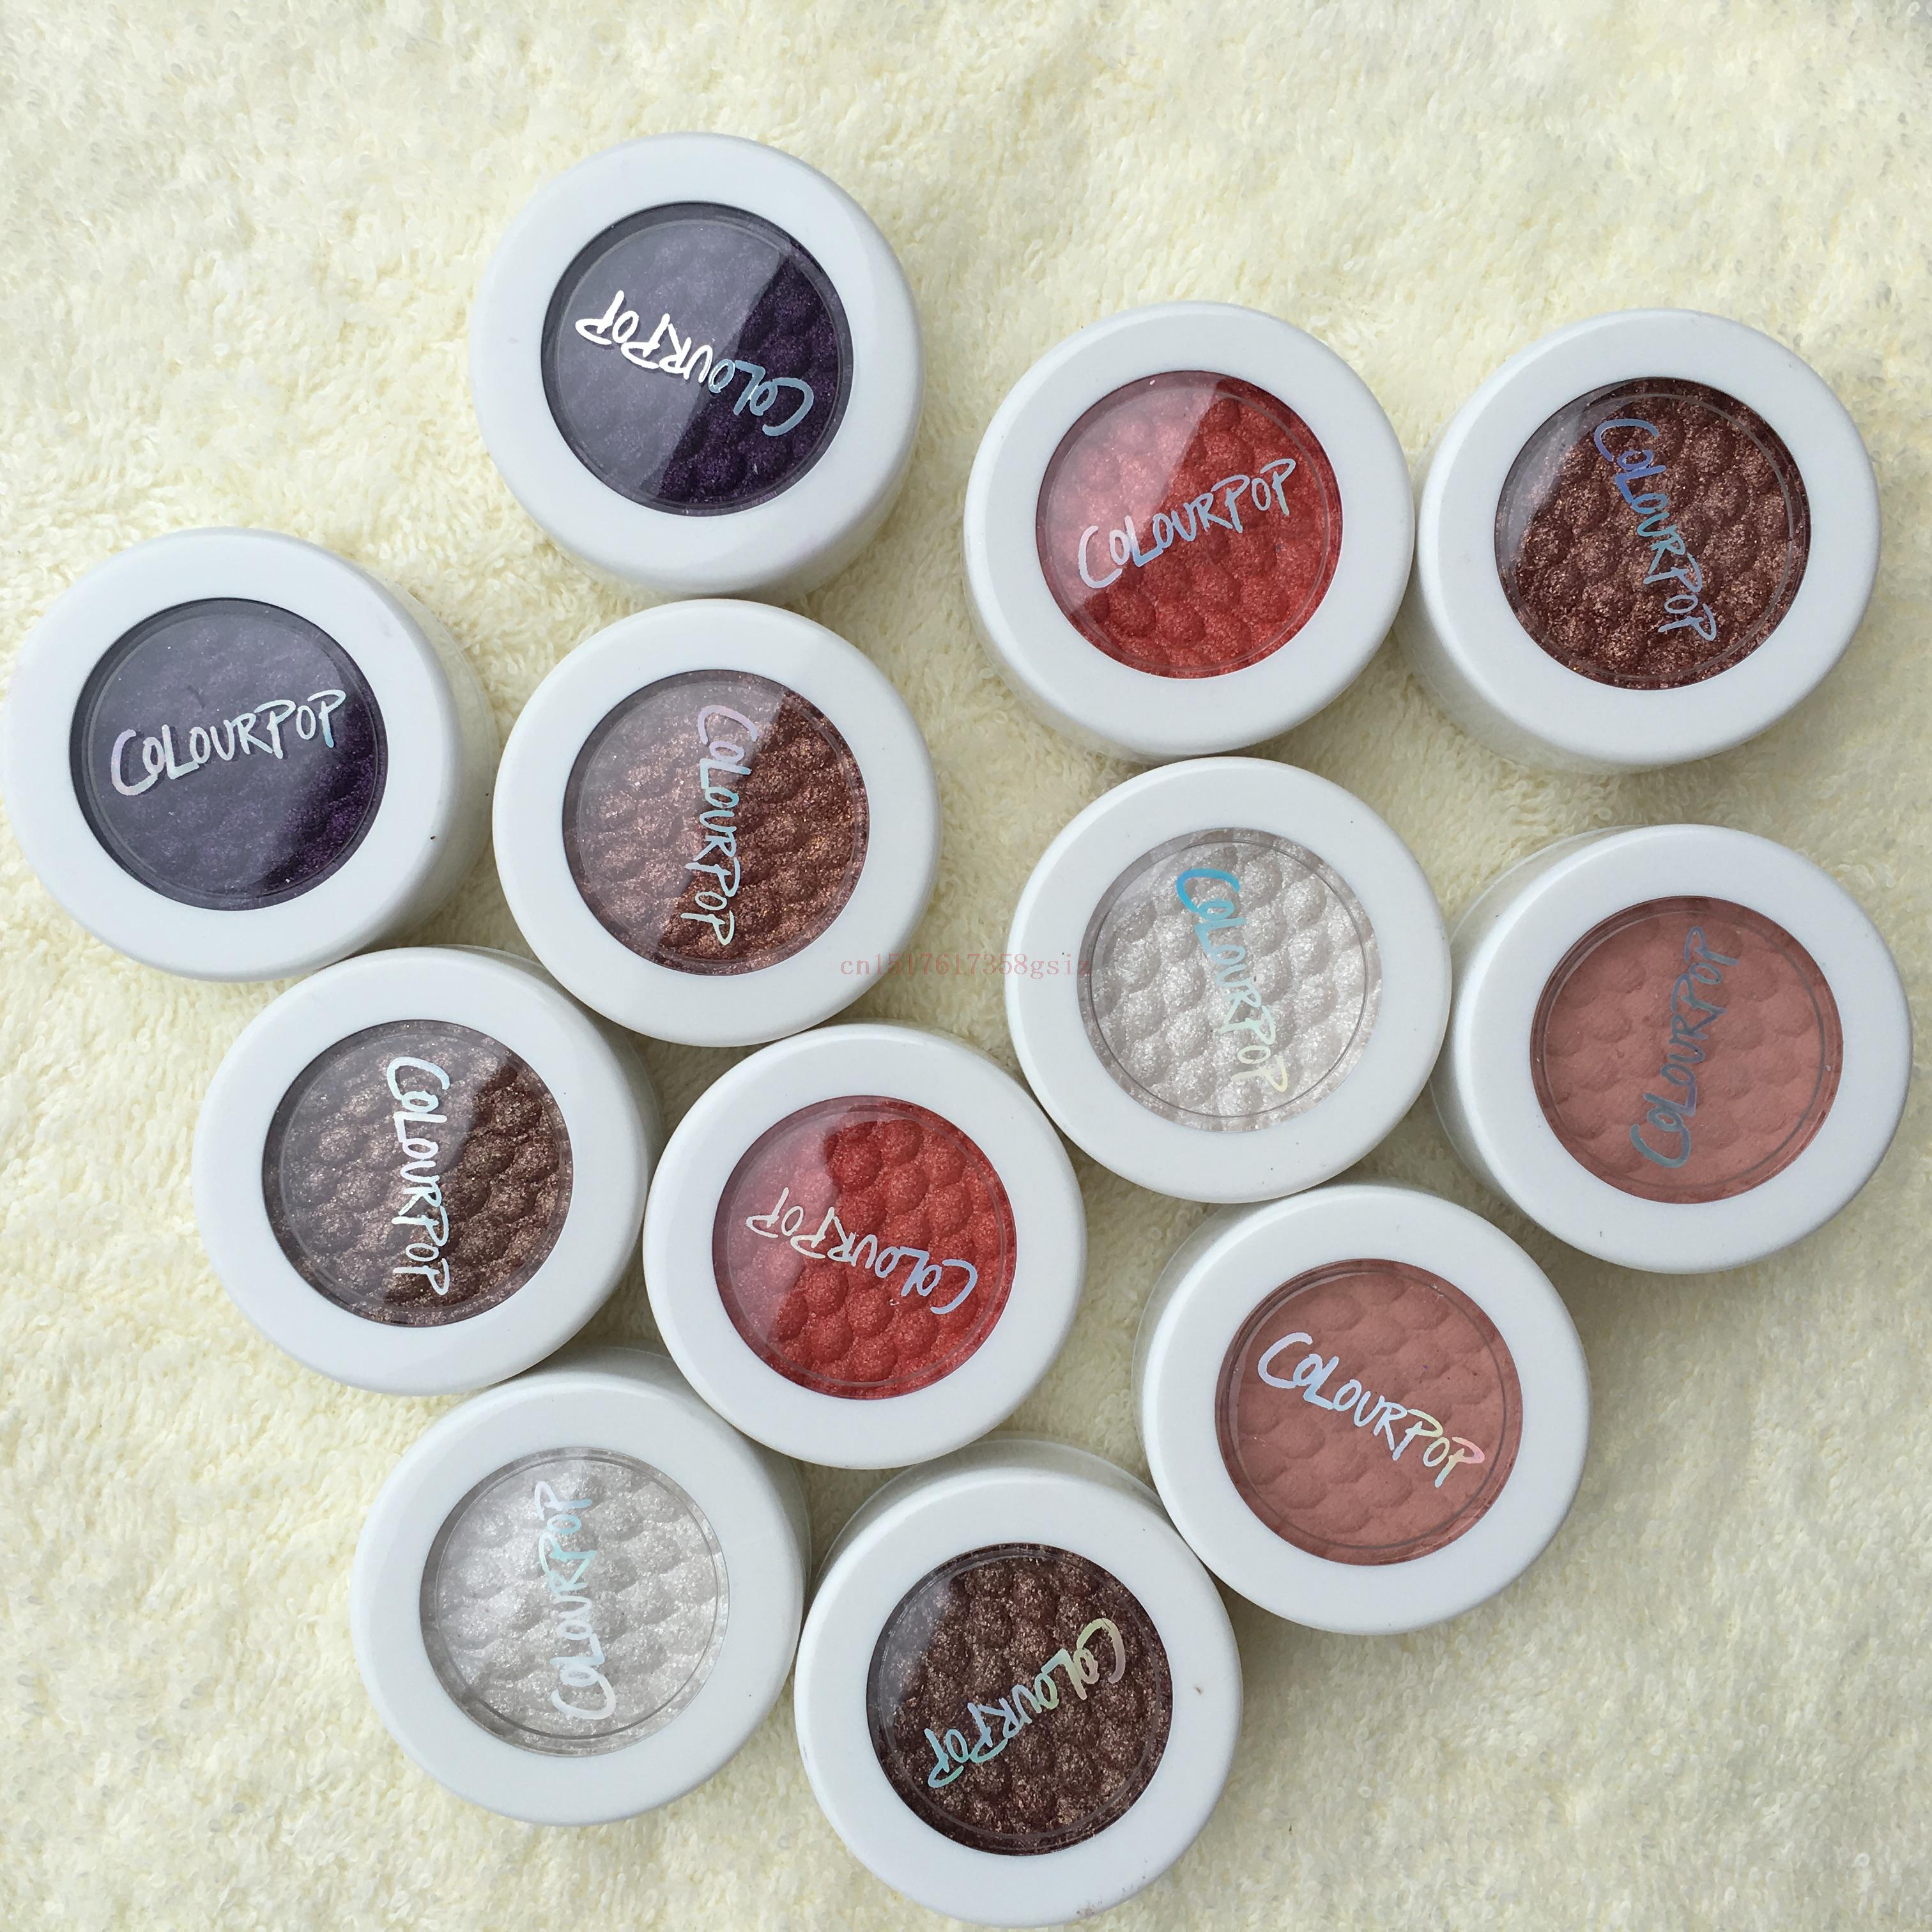 Colourpop Super Shock Shadows 24 Colors COLOURPOP Eye Shadow Long-lasting Waterproof Monochromatic Eyeshadow Makeup Maquillage(China (Mainland))